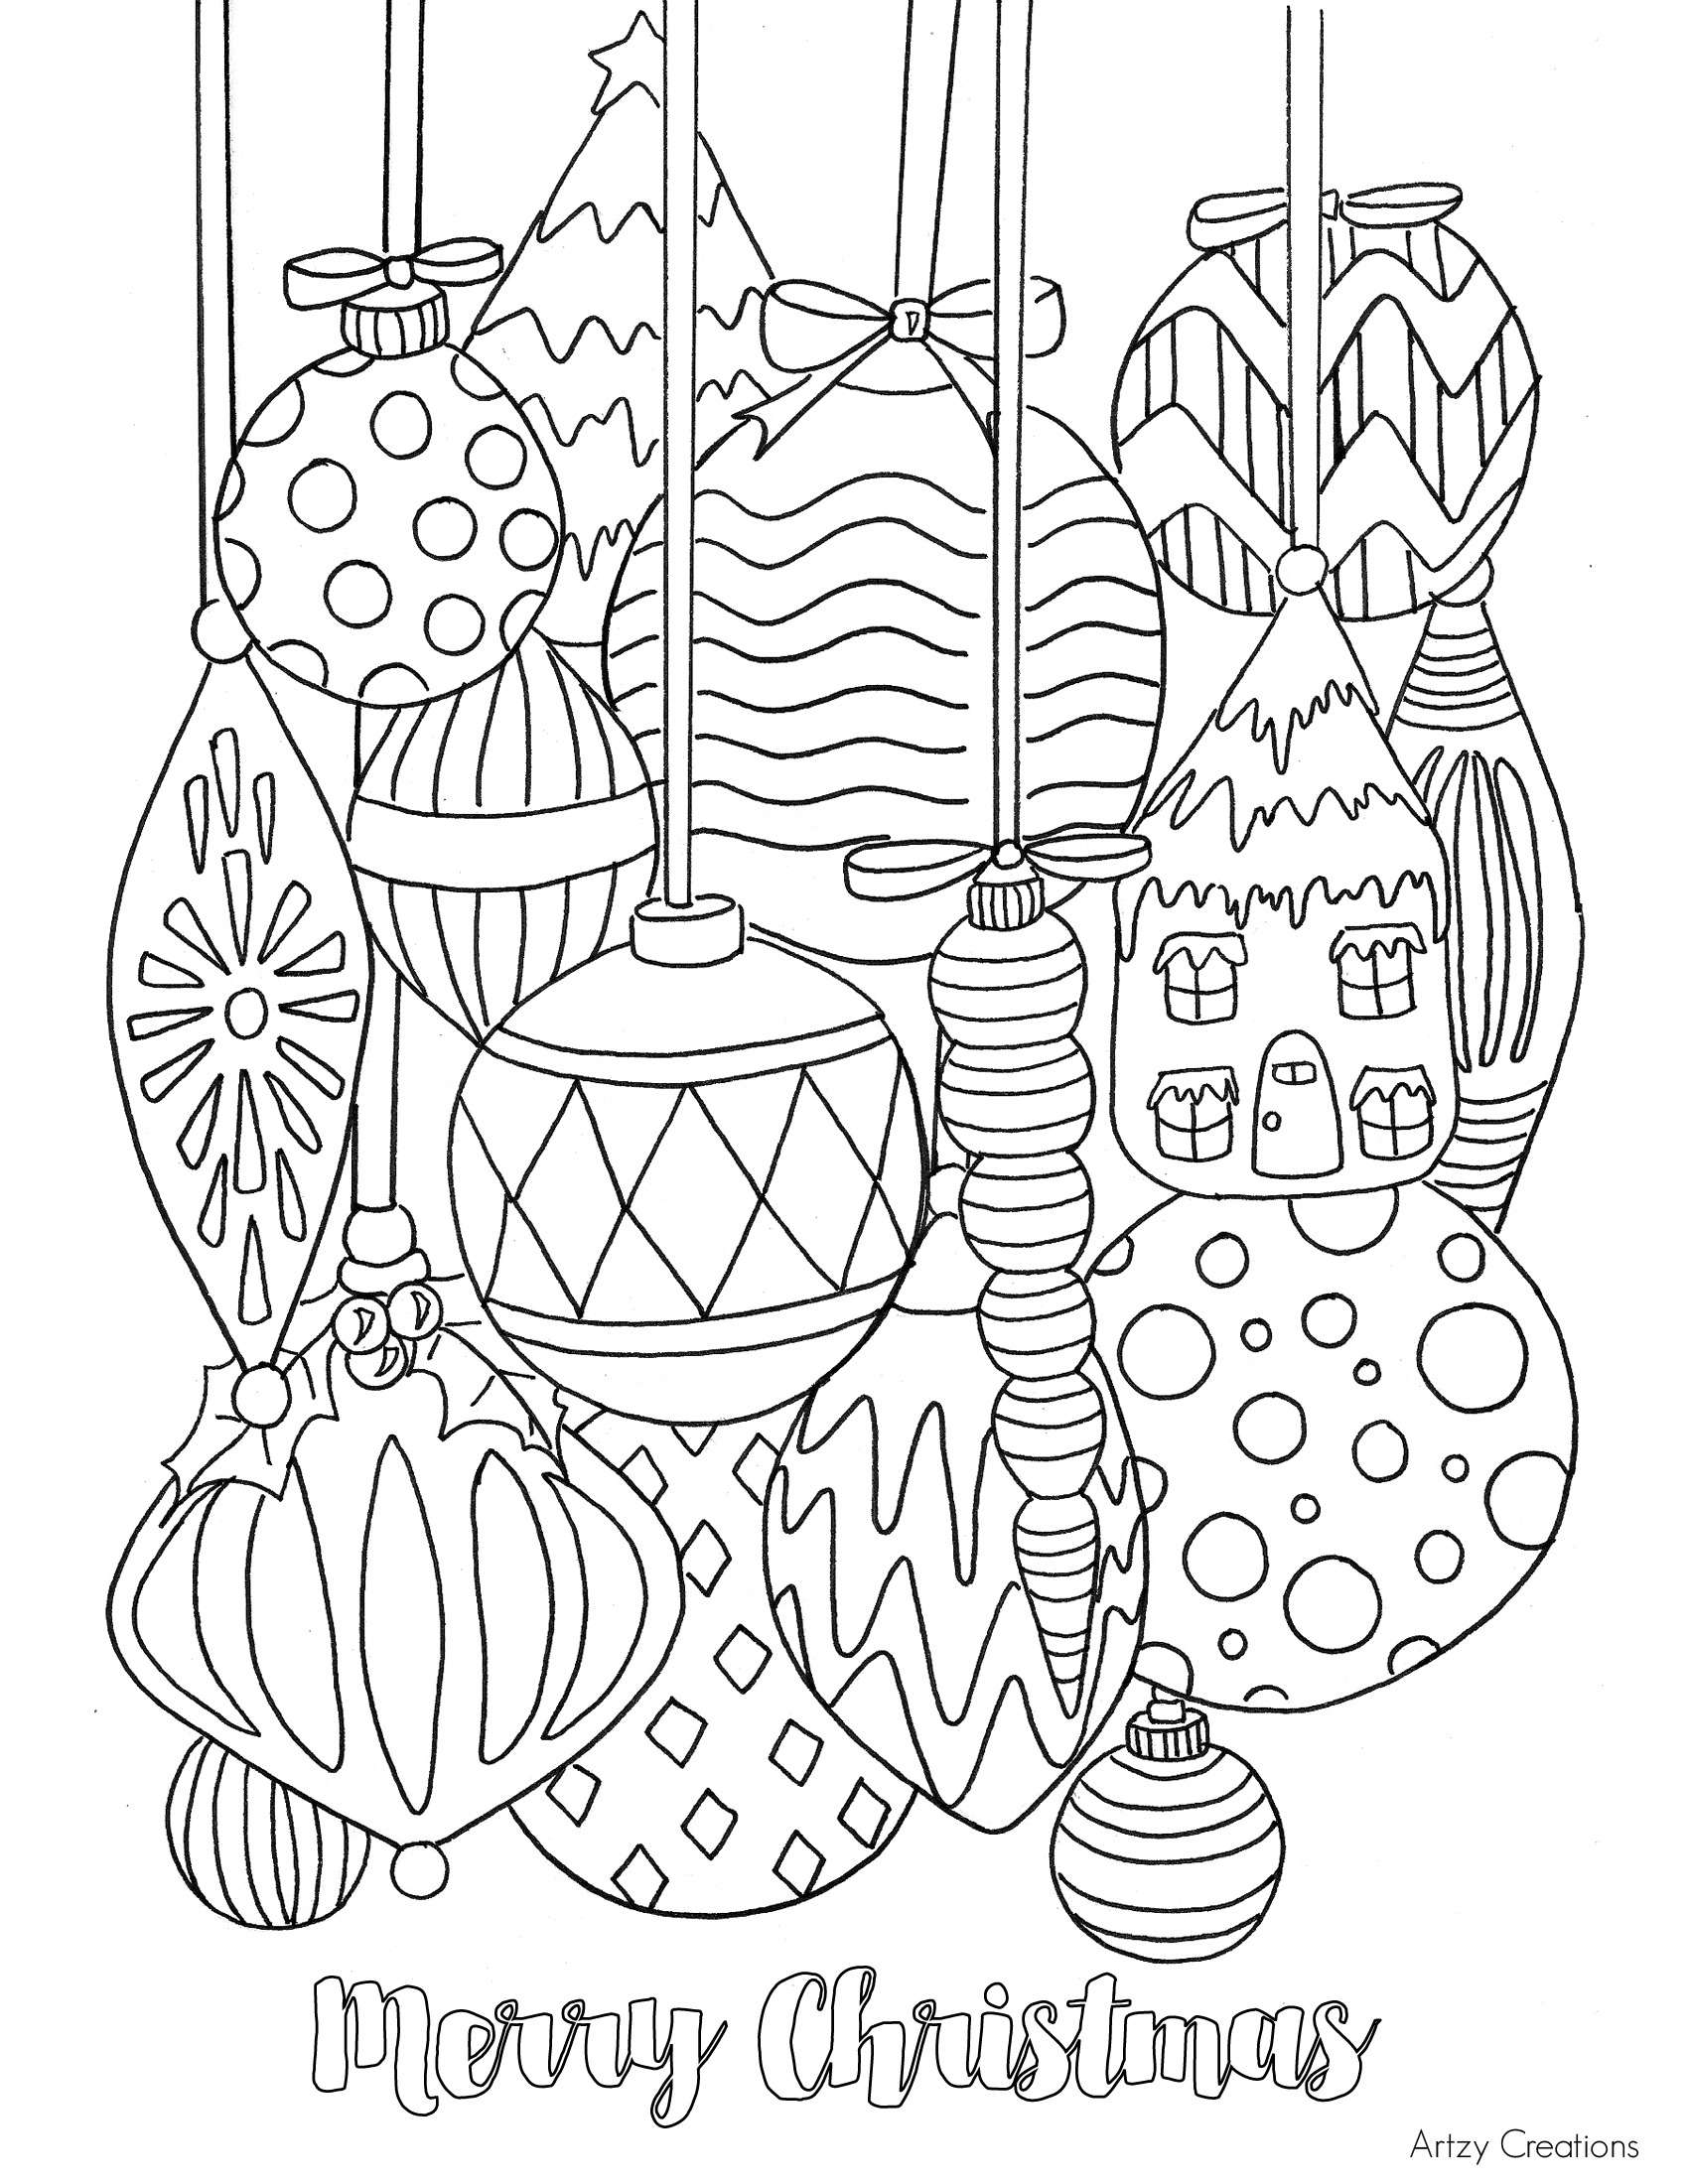 Christmas Coloring Pages Star Wars With Stable Page Free